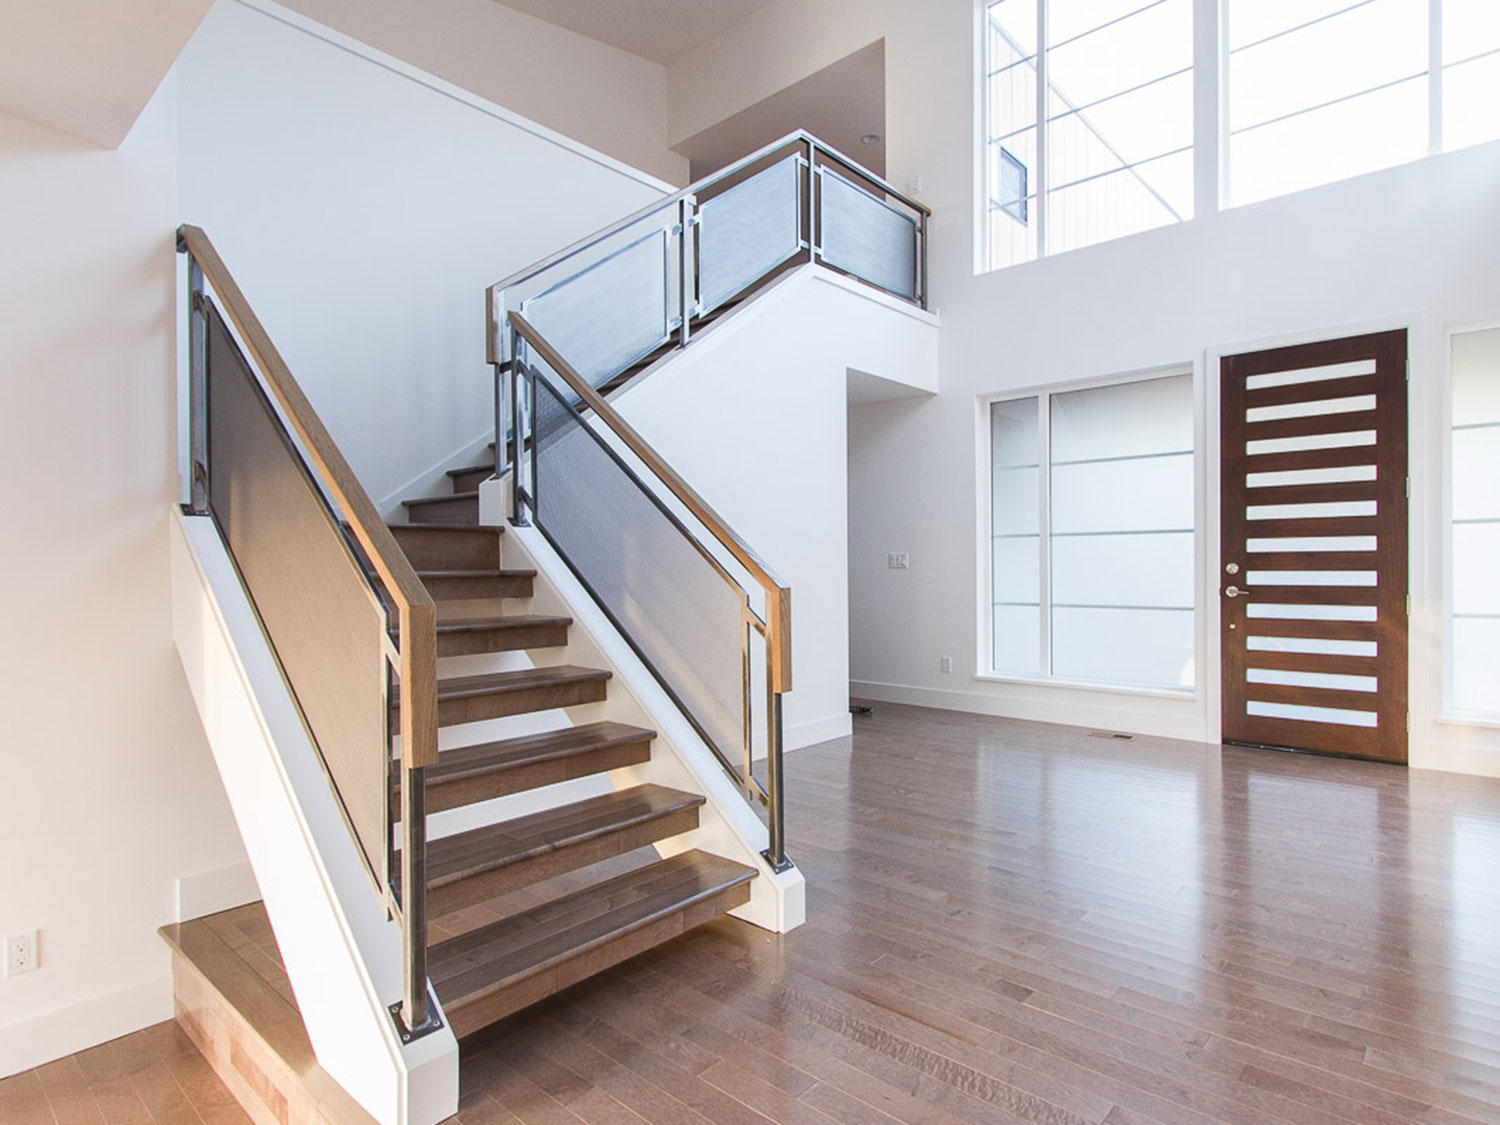 Modern Home Guardrails for Main Stairs - from living room - Kirkland, WA